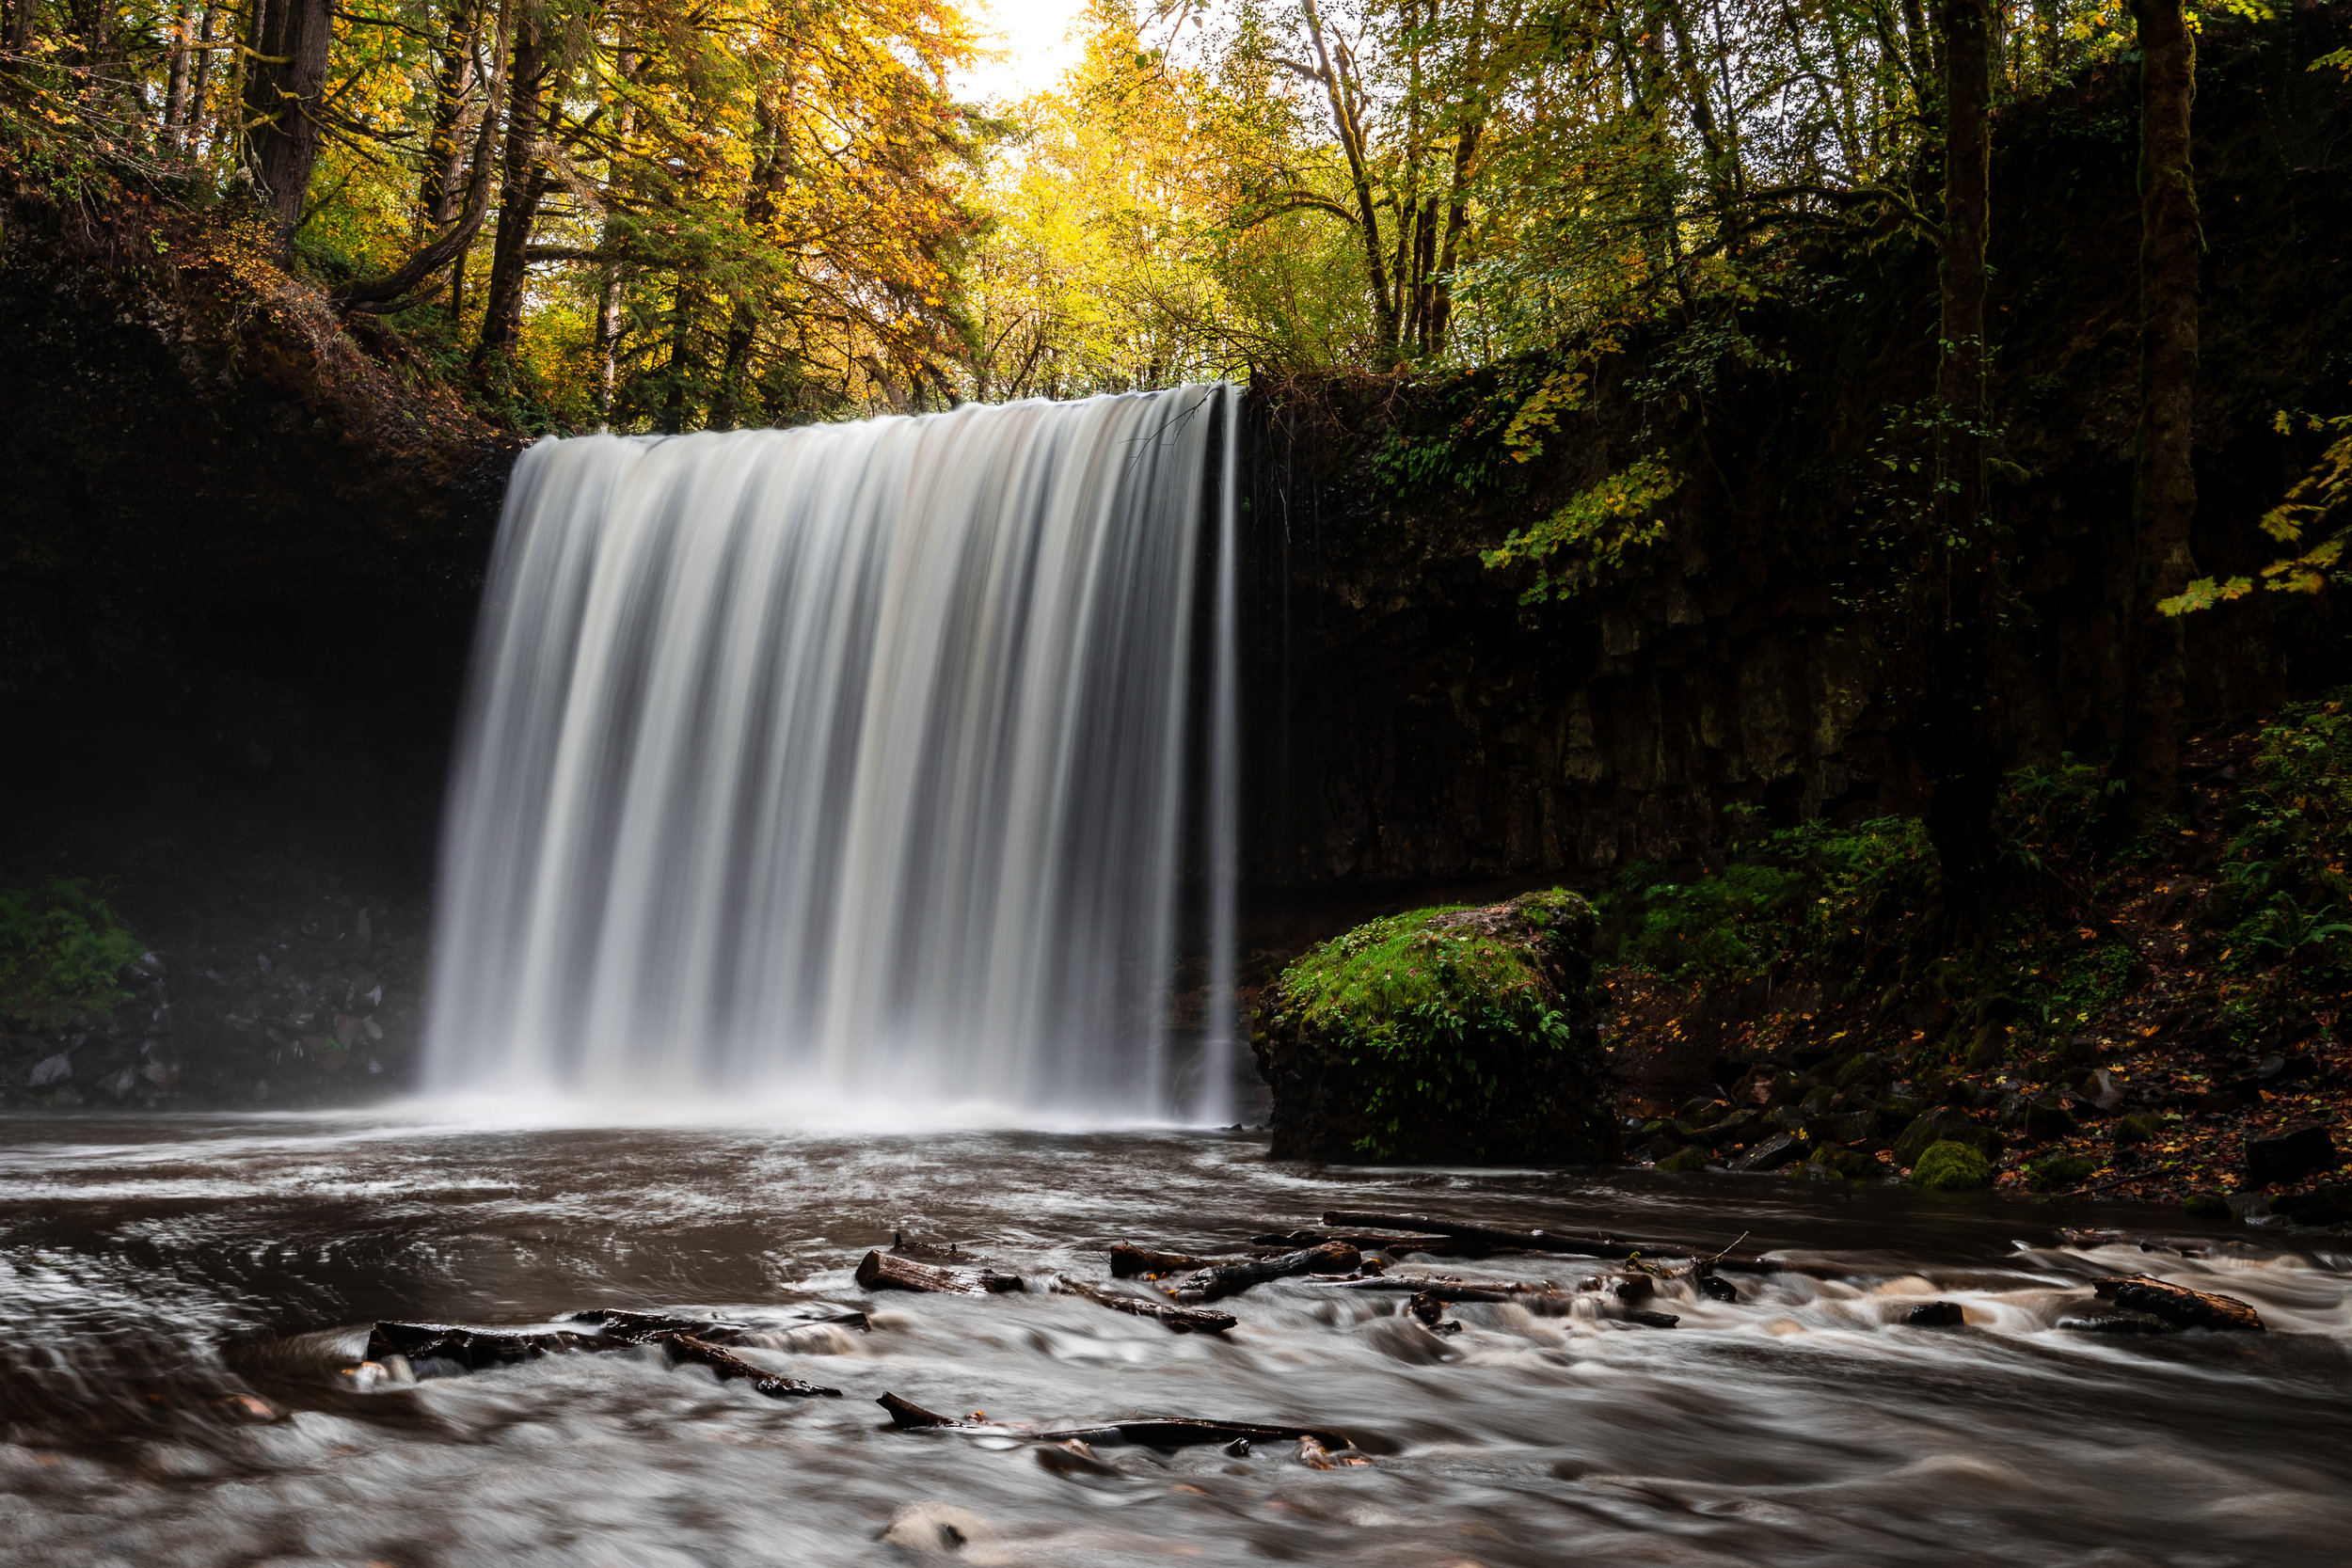 My favorite image from the trip out to Beaver Falls with the fall color being backlit by the last bit of sunlight!